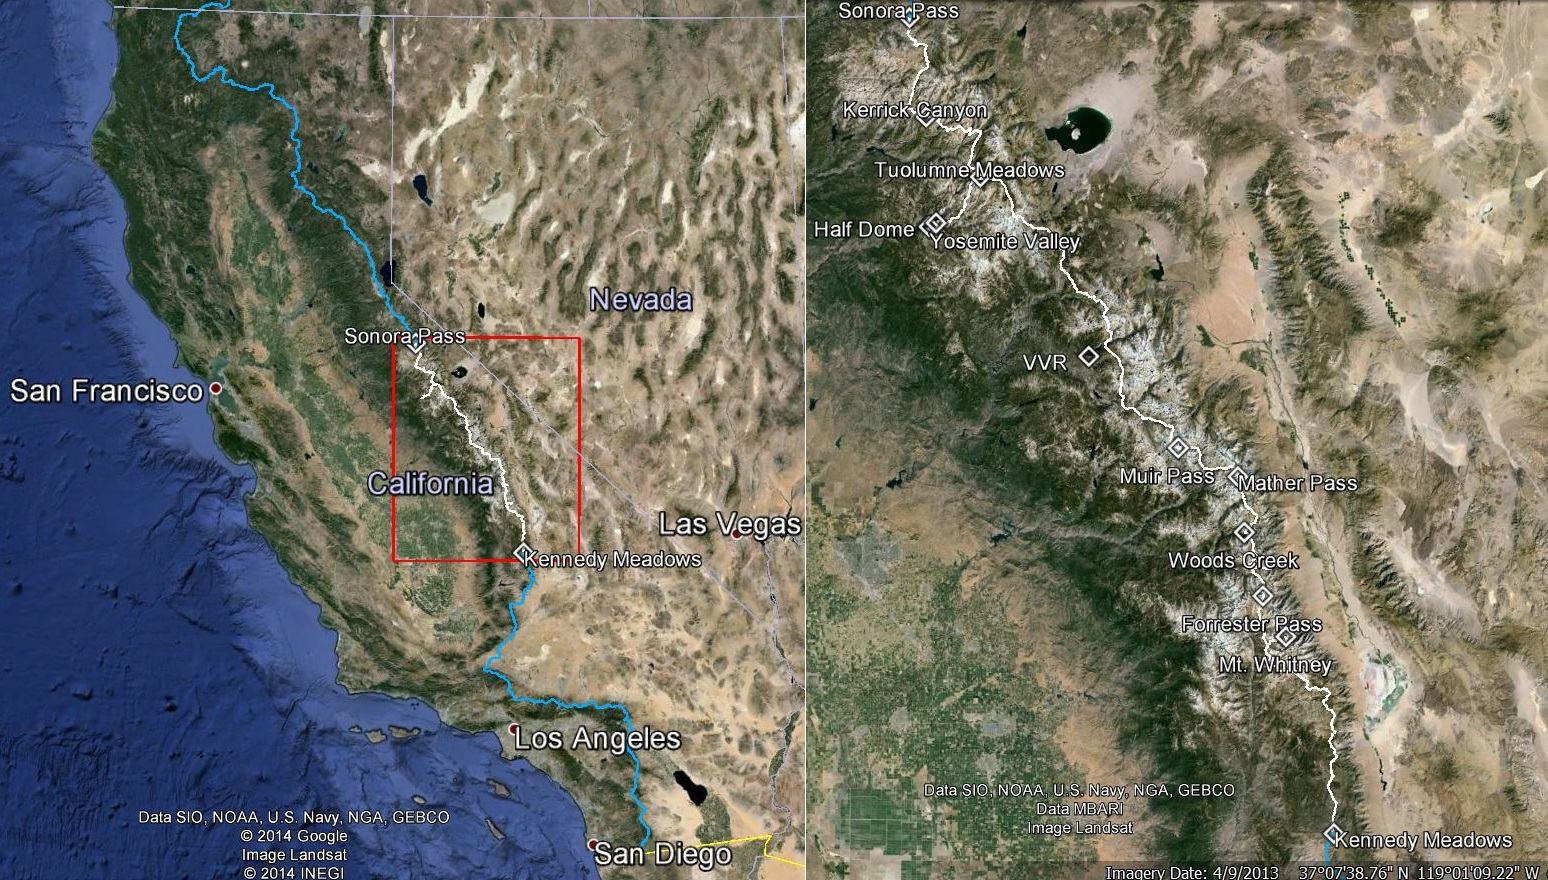 [Click image to enlarge]  Left image shows the PCT through California and the insert on right shows the section through the Sierra Nevada mountains up to Sonora Pass, a total of 360 miles hiked for the authors, including detours, over 25 days. This narrative is presented in two parts: Part 1 from Kennedy Meadows to VVR, and Part 2 from VVR to Sonora Pass.